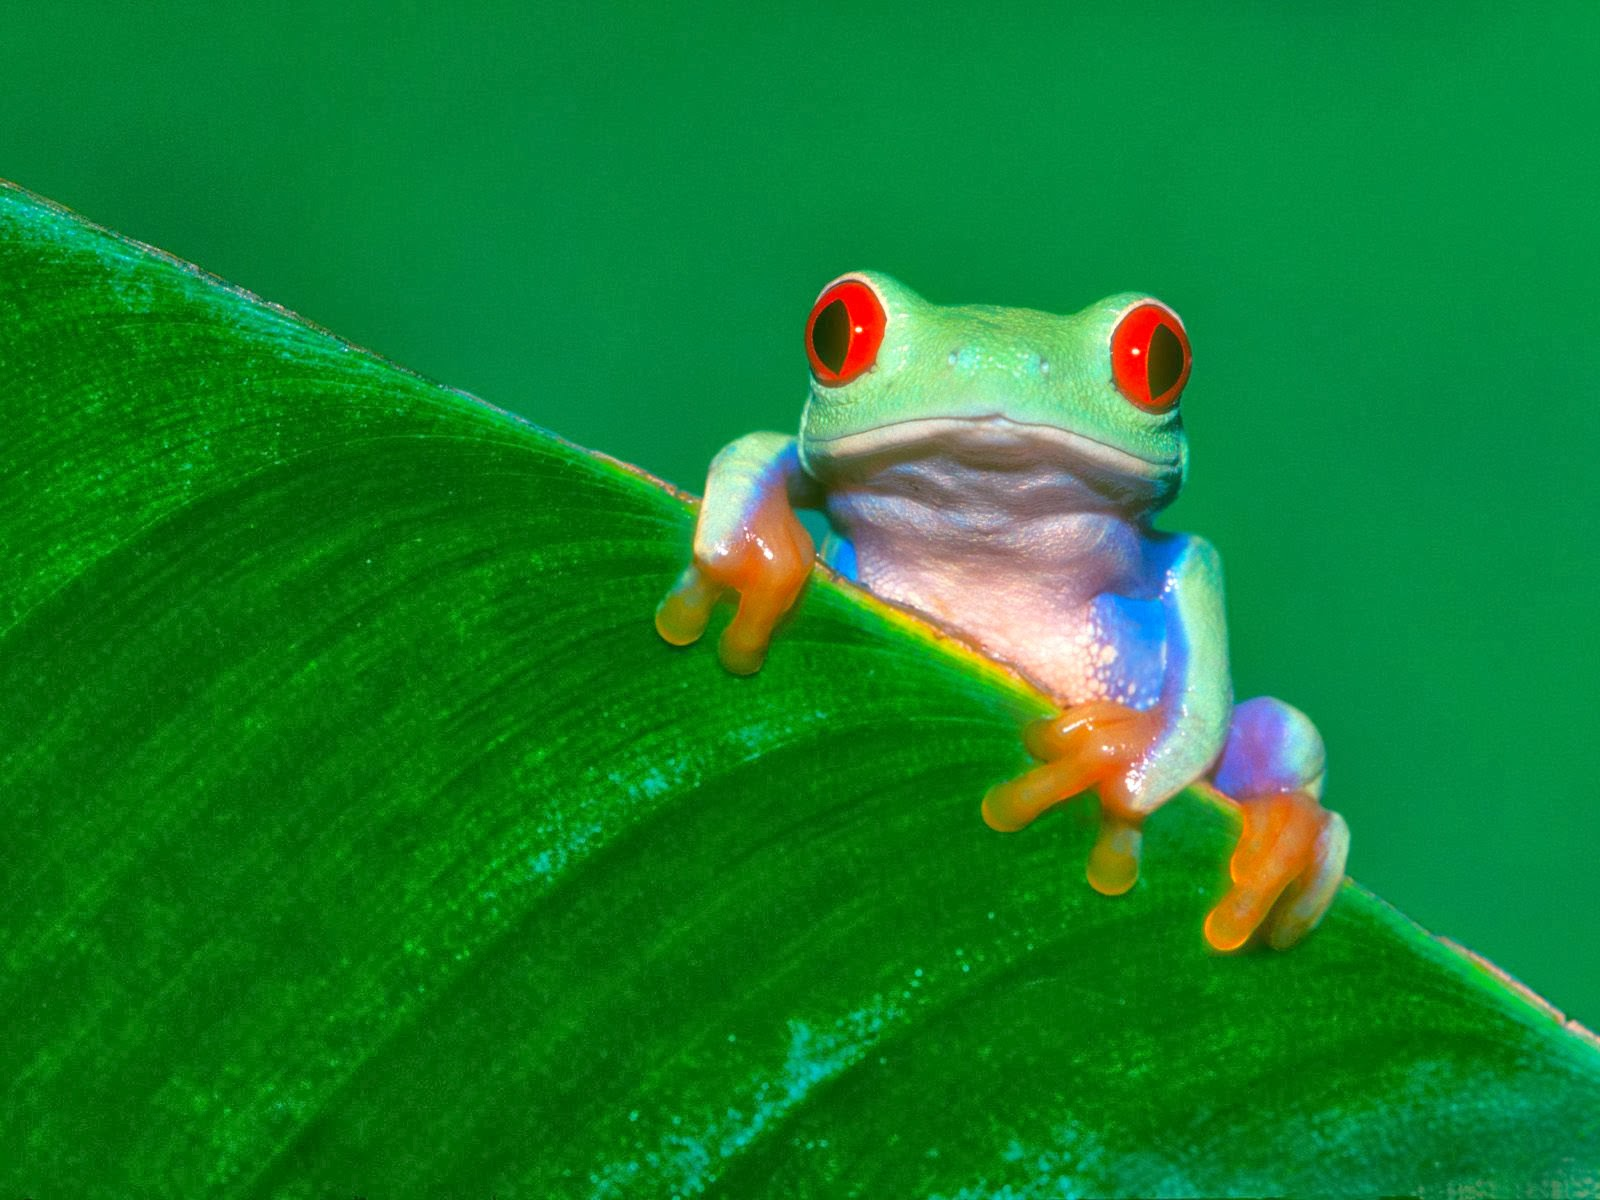 Frog wallpaper HD   beautiful desktop wallpapers 2014 1600x1200